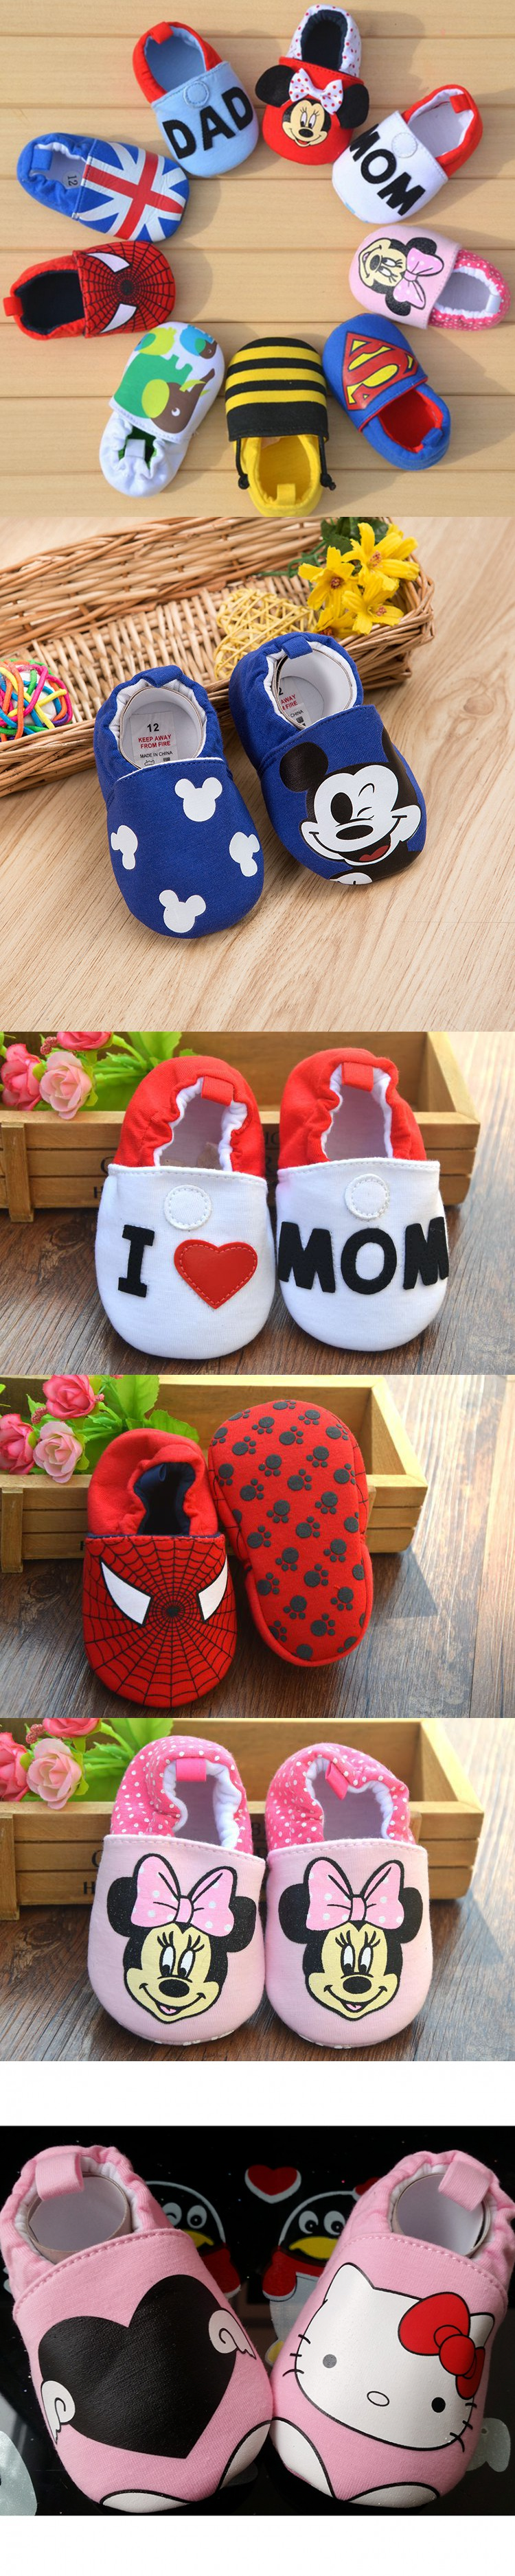 Baby Newborn Shoes Slip Kids Shoes Cartoon Prewalker Soft Bottom Bebe Infant Shoes First Walkers Fashion Shoes